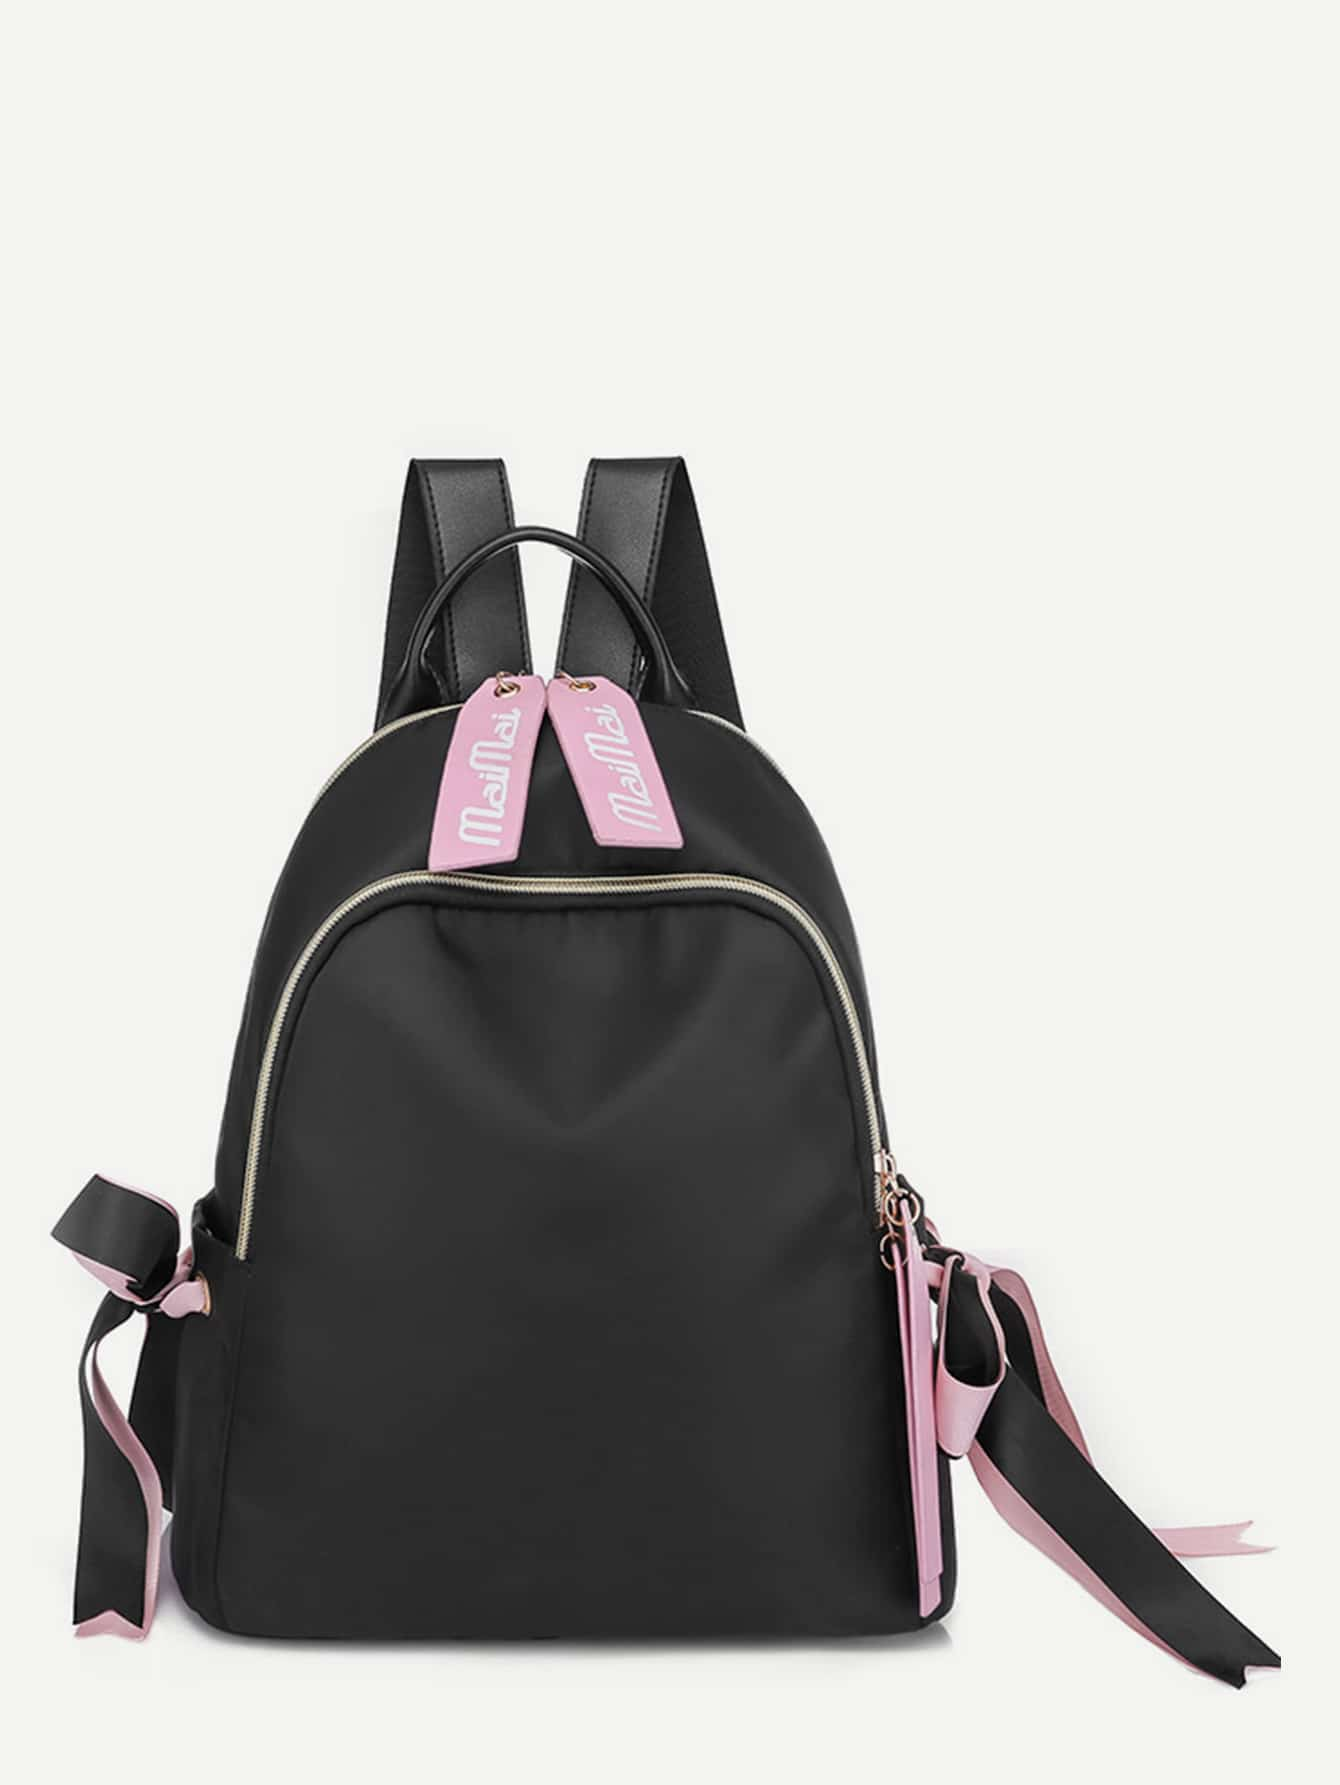 Bow Tie Decor Backpack